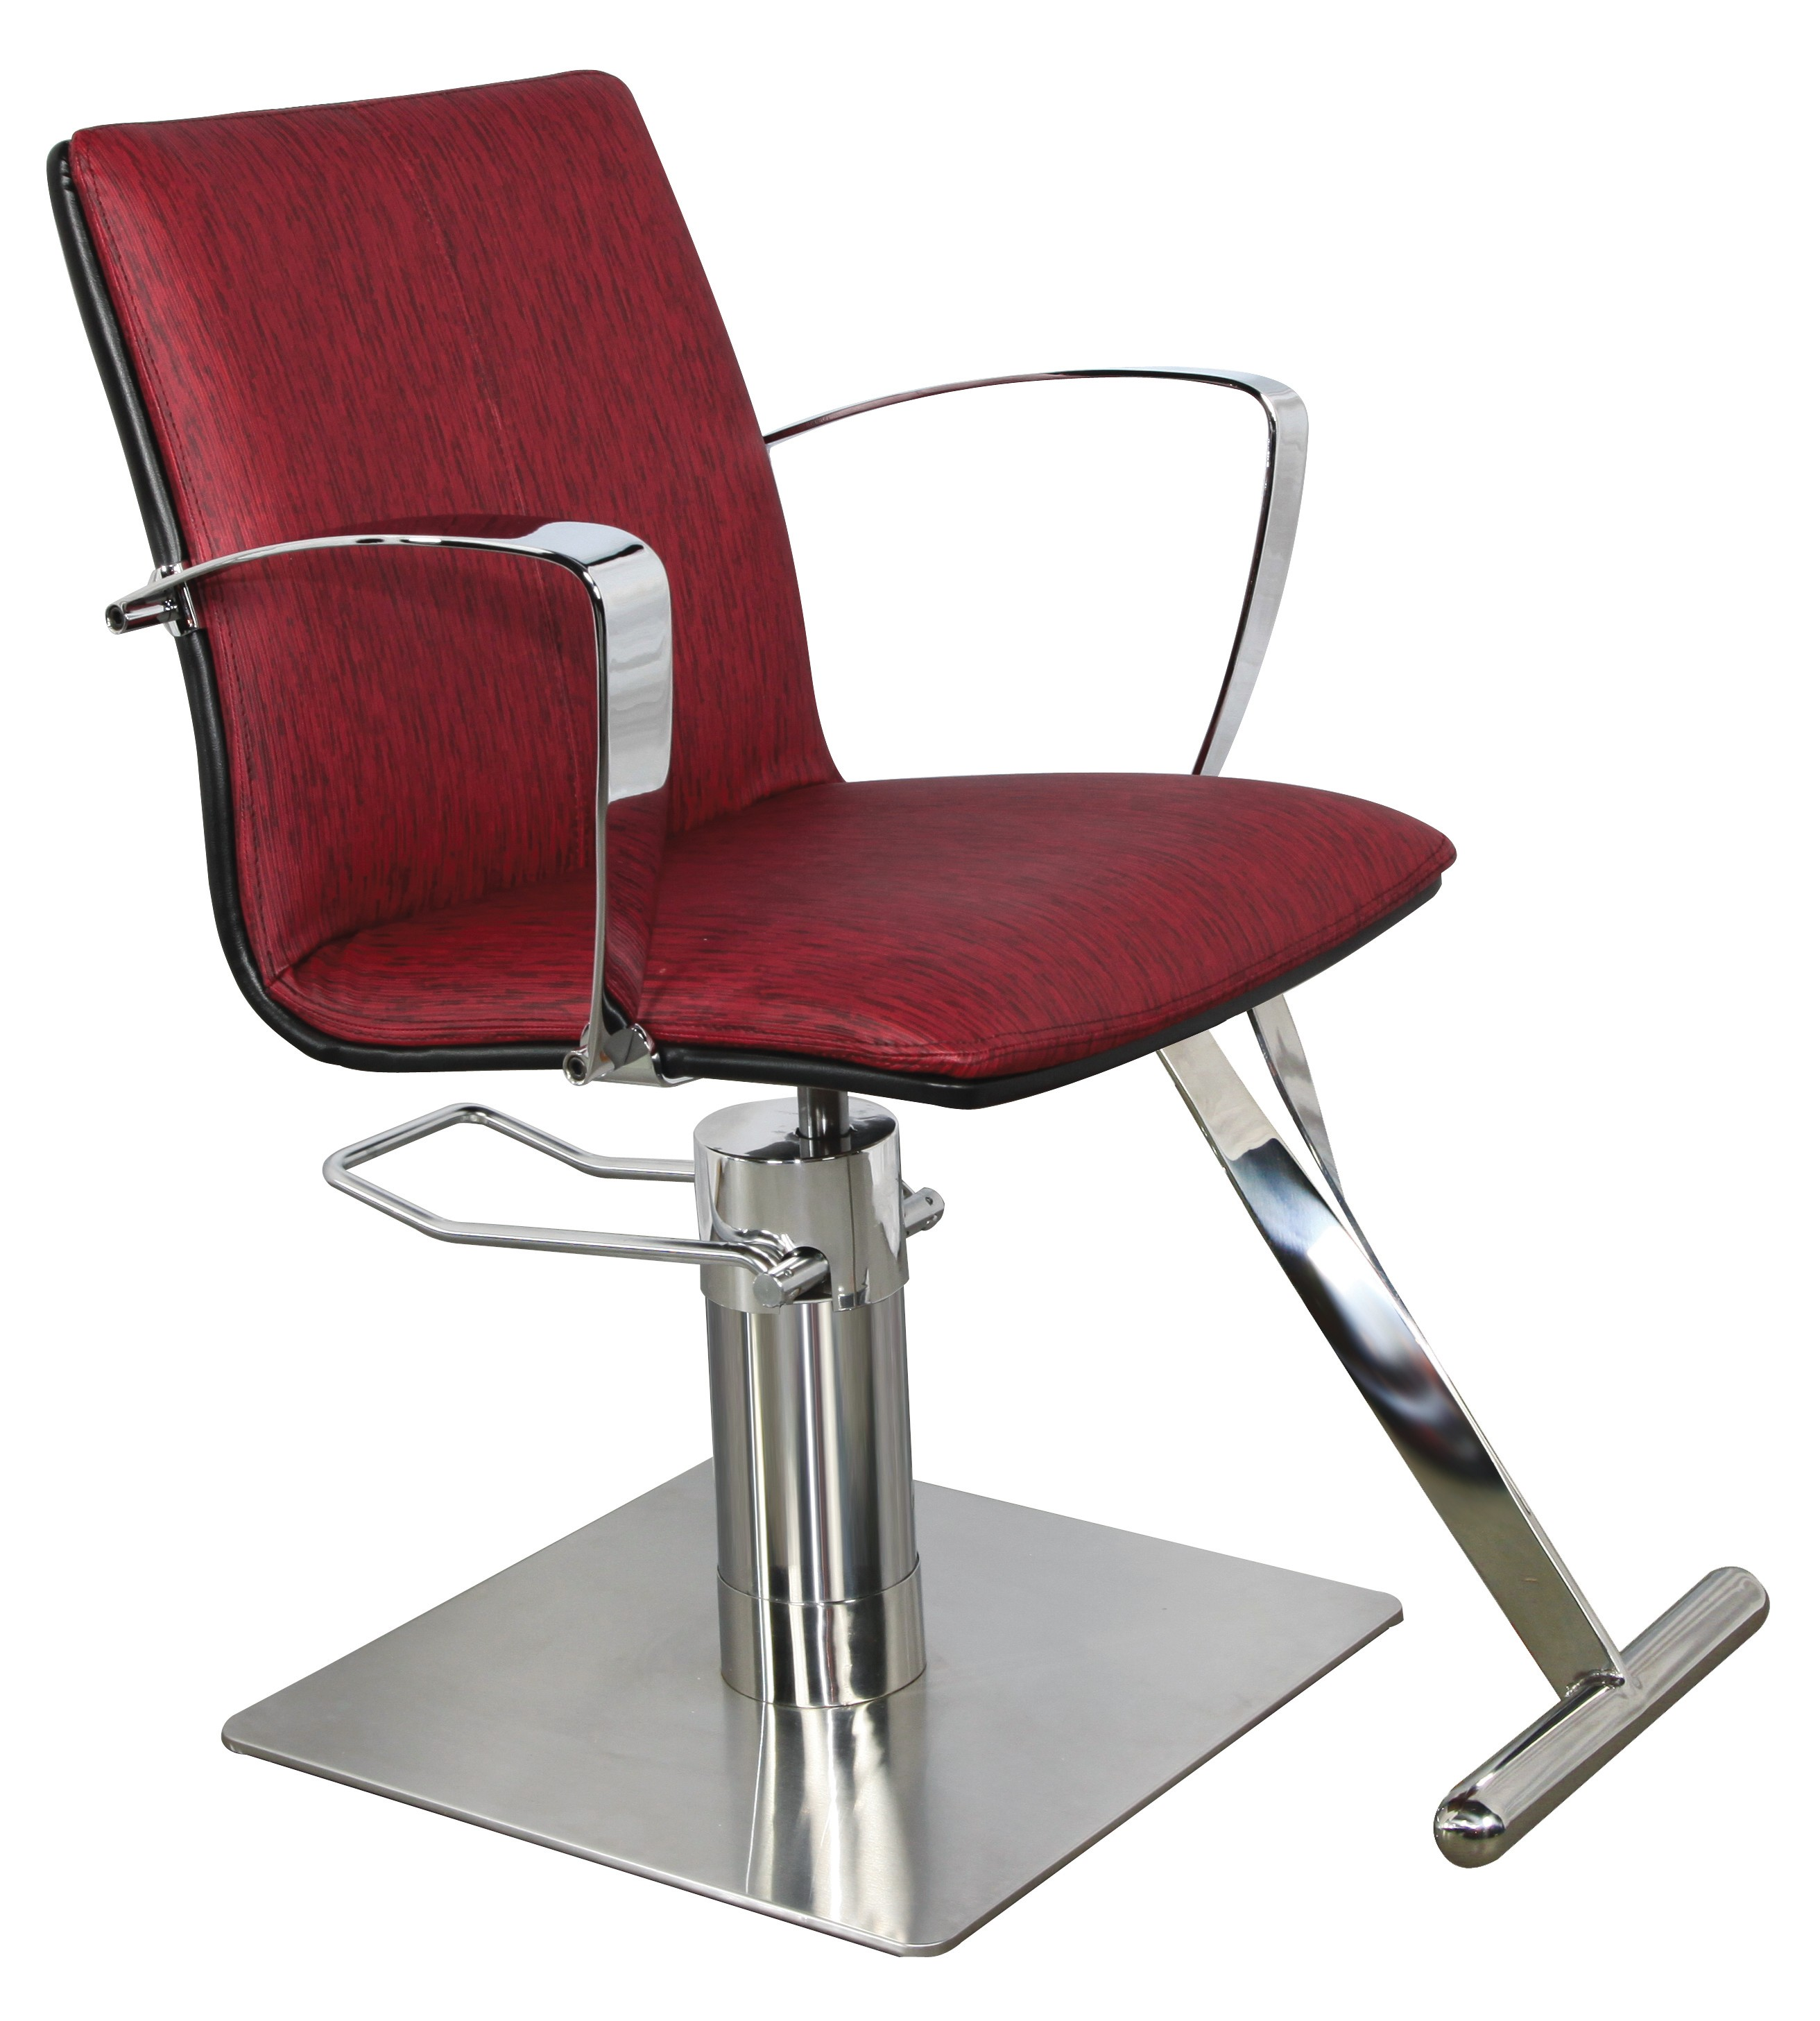 KAEMARK SV-60 SALVADOR STYLING CHAIR